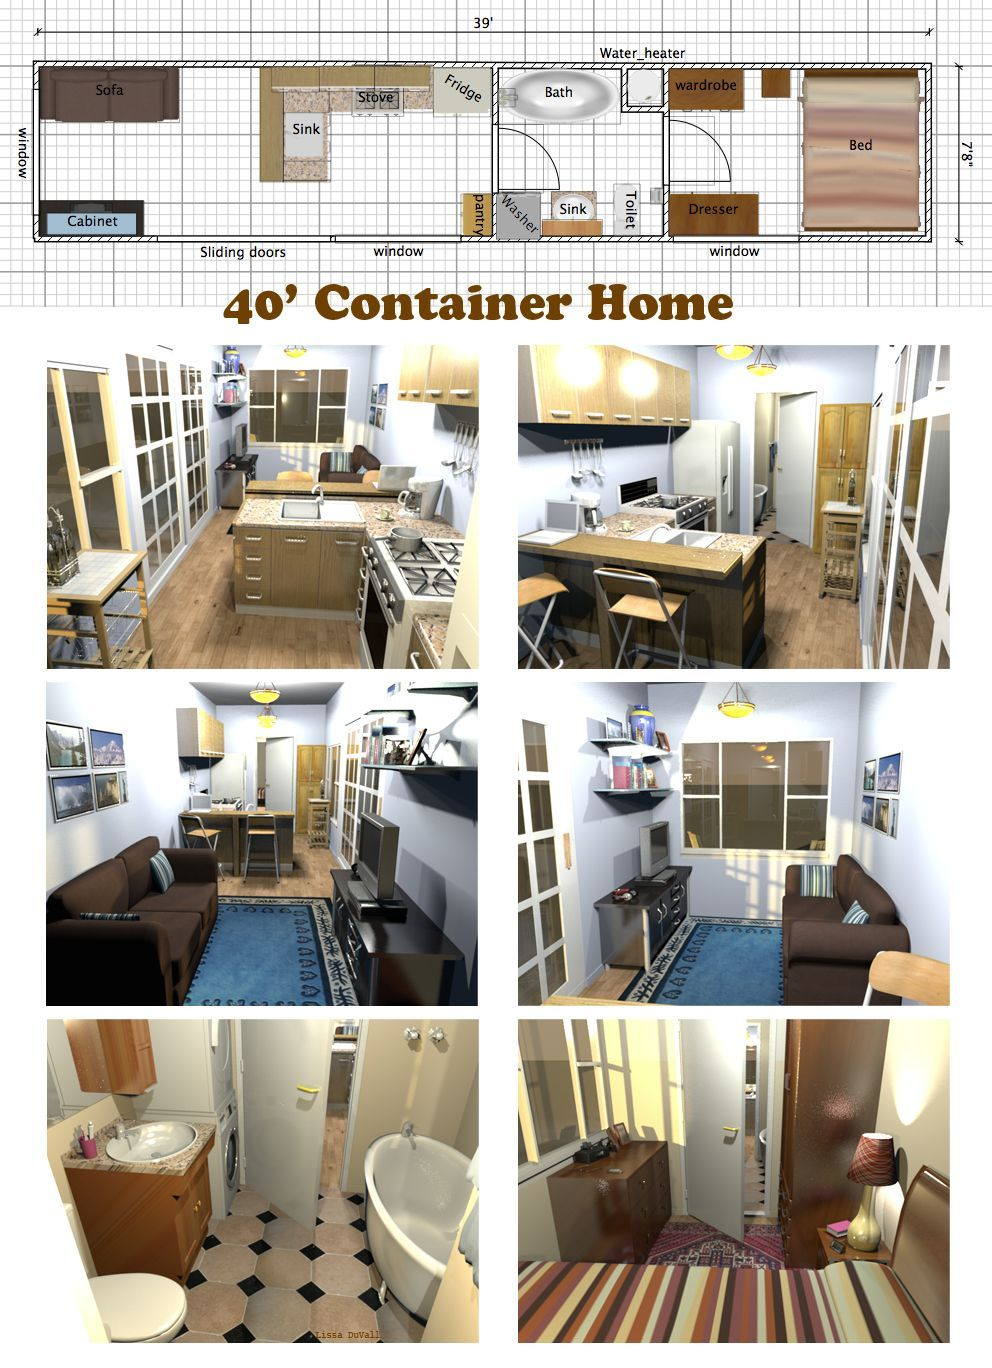 A Very Space Efficient Floor Plan For A Container Home Container Tiny House Container House Building A Container Home Container House Plans